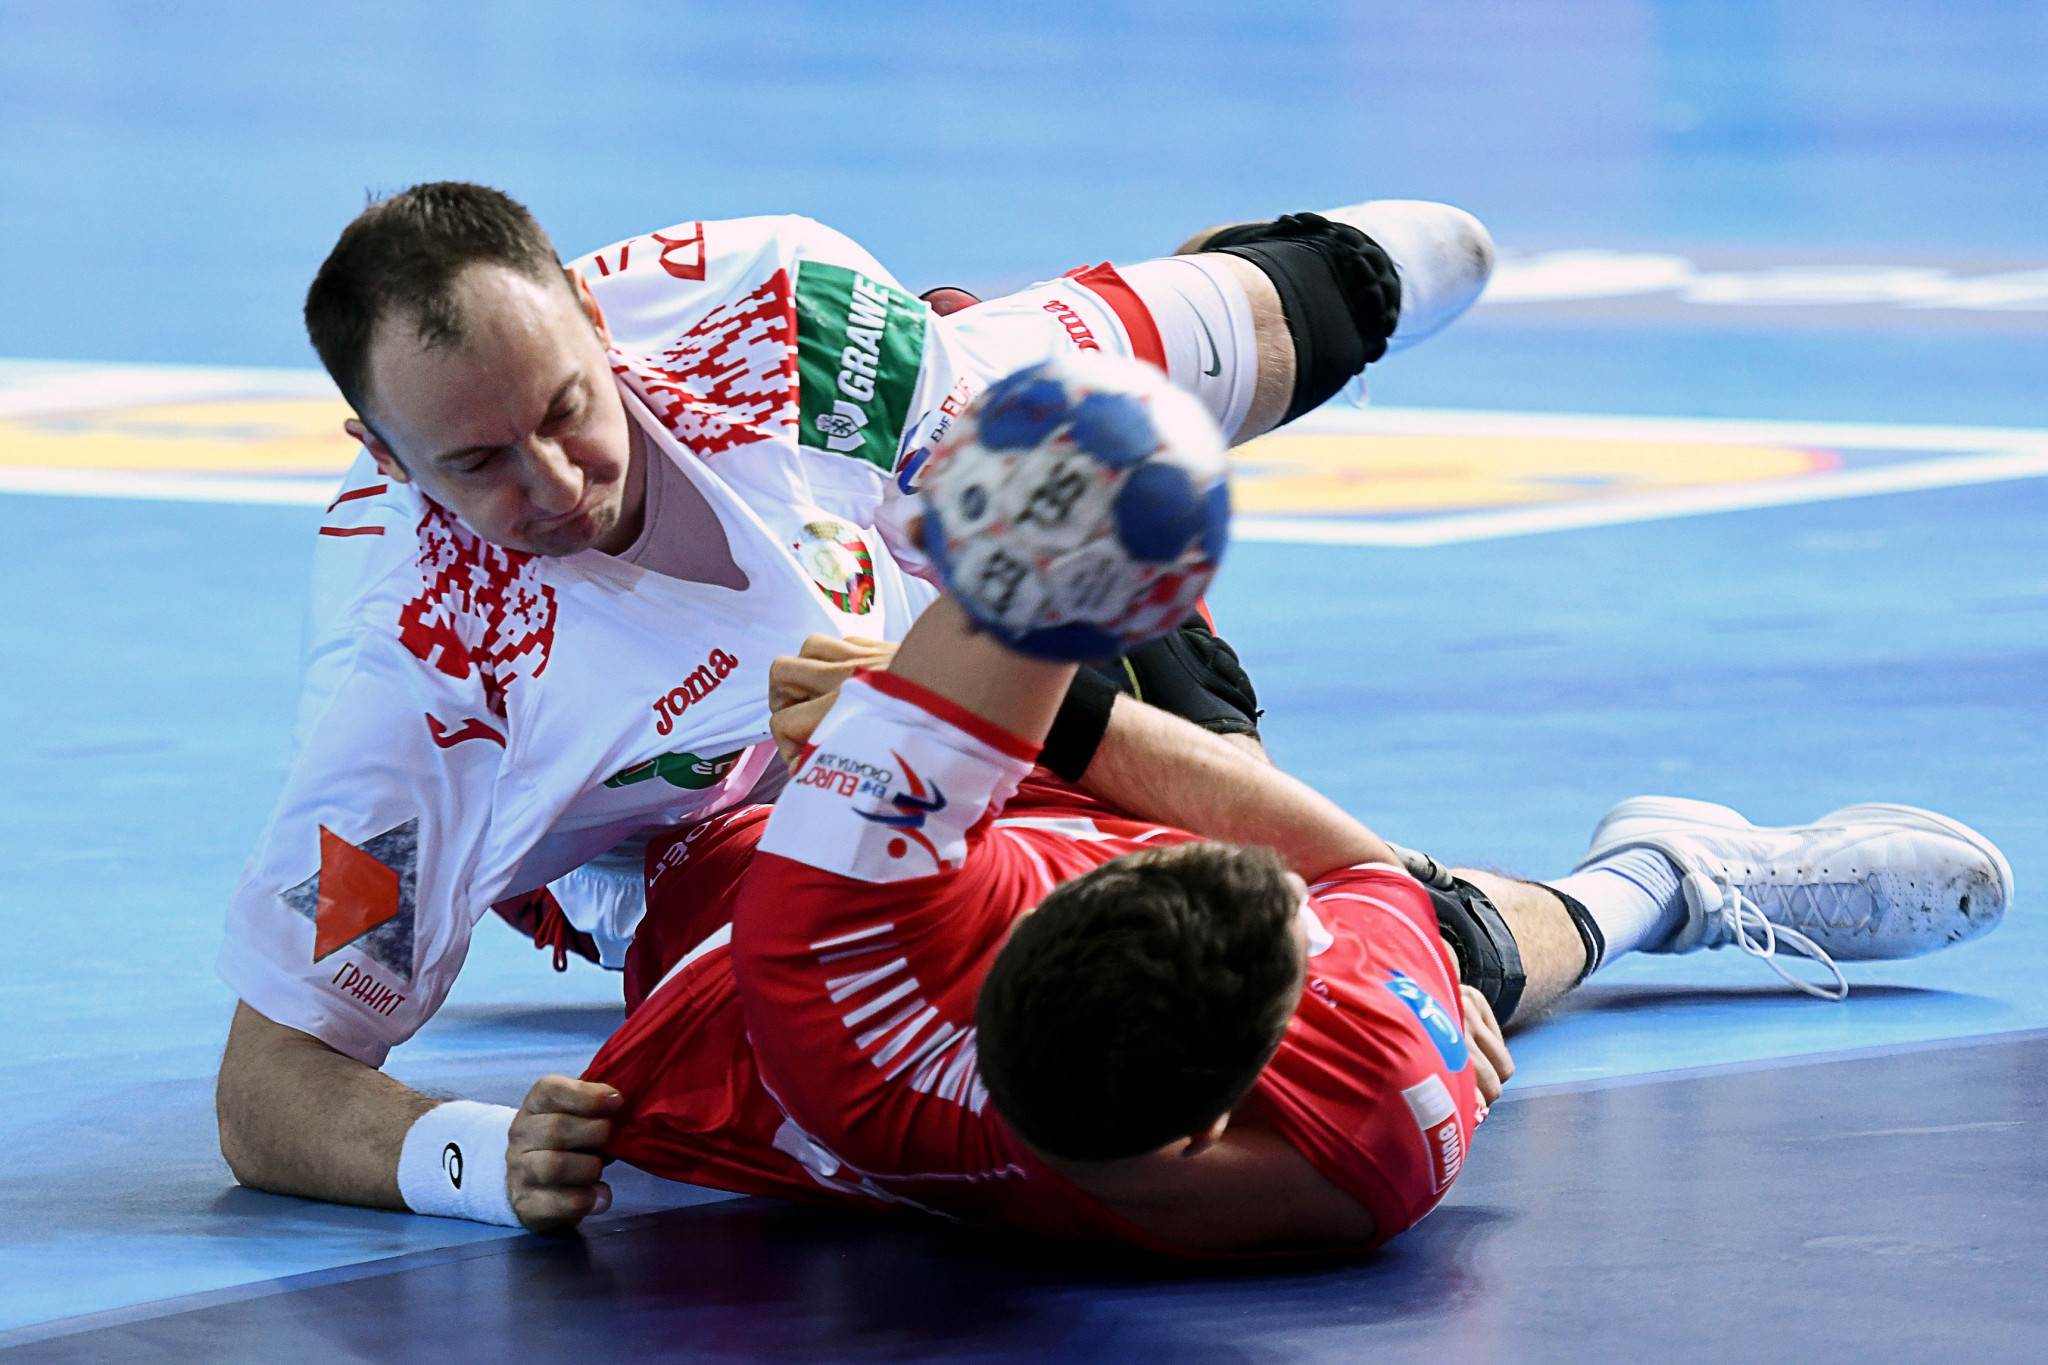 Maxim Babichev, of Belarus, vies for the ball with Lukas Herburger, of Austria, during the preliminary round group B match of the Men's 2018 EHF European Handball Championship in Porec, Croatia ©Getty Images